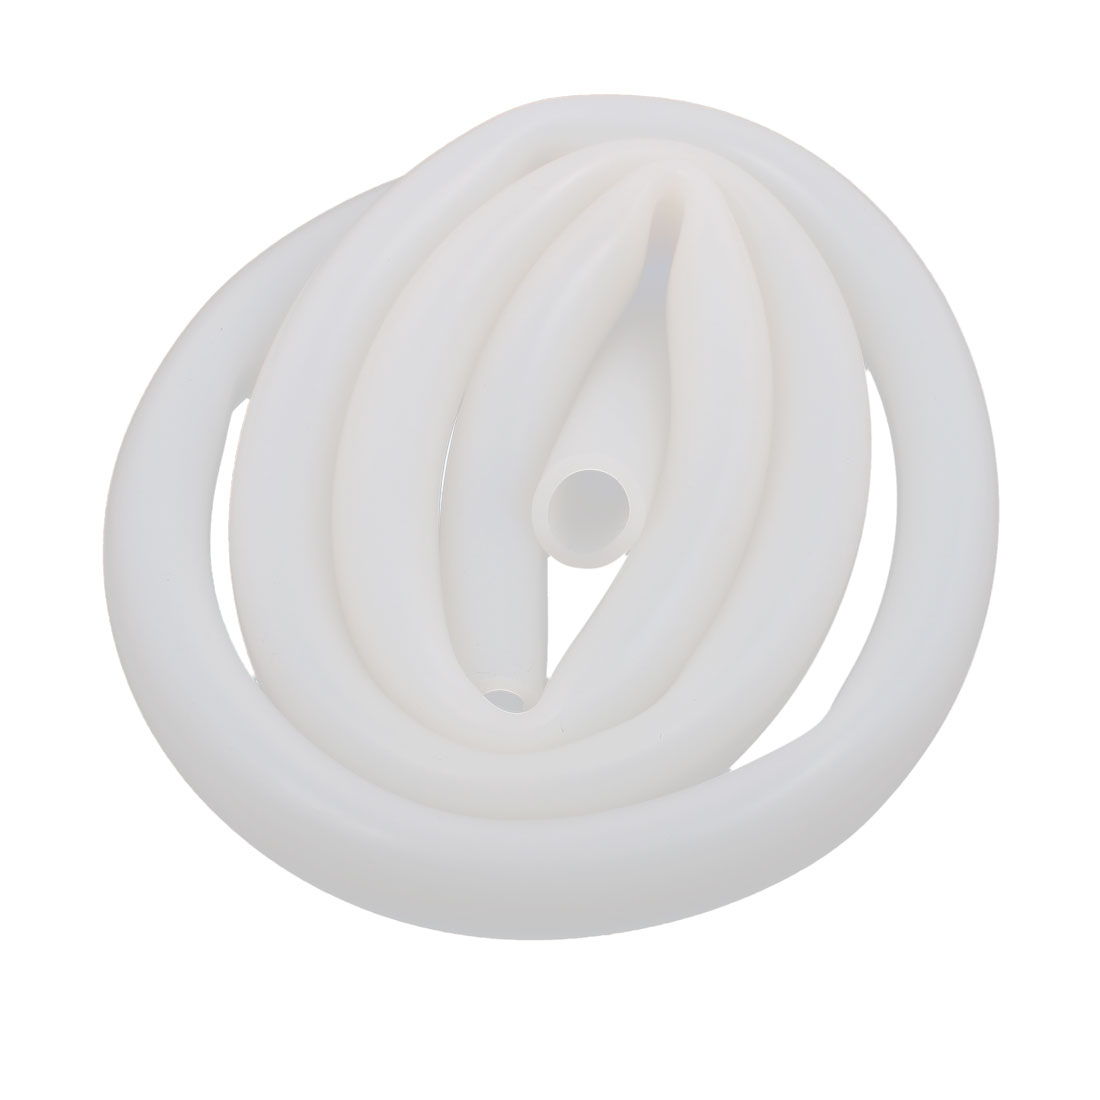 13 x 18mm Translucent Silicone Tube High Temperature Resistant Hose Pipe 1M